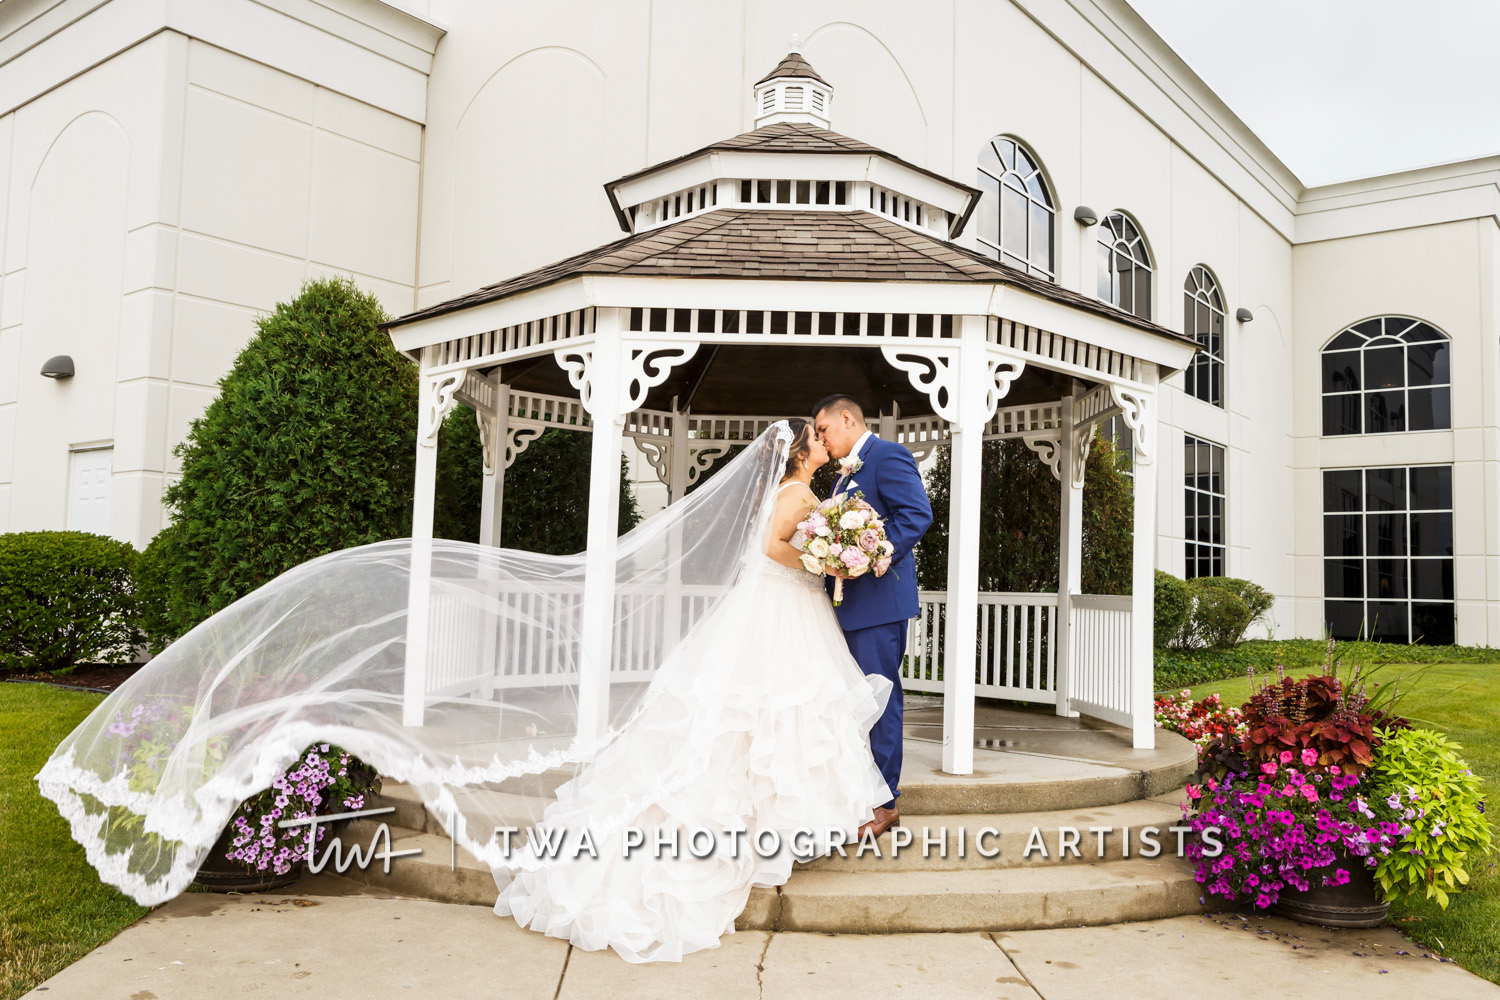 Weddings at DiNolfo's Banquets of Homer Glen | TWA Photographic Artists | Chicago Wedding Photographers